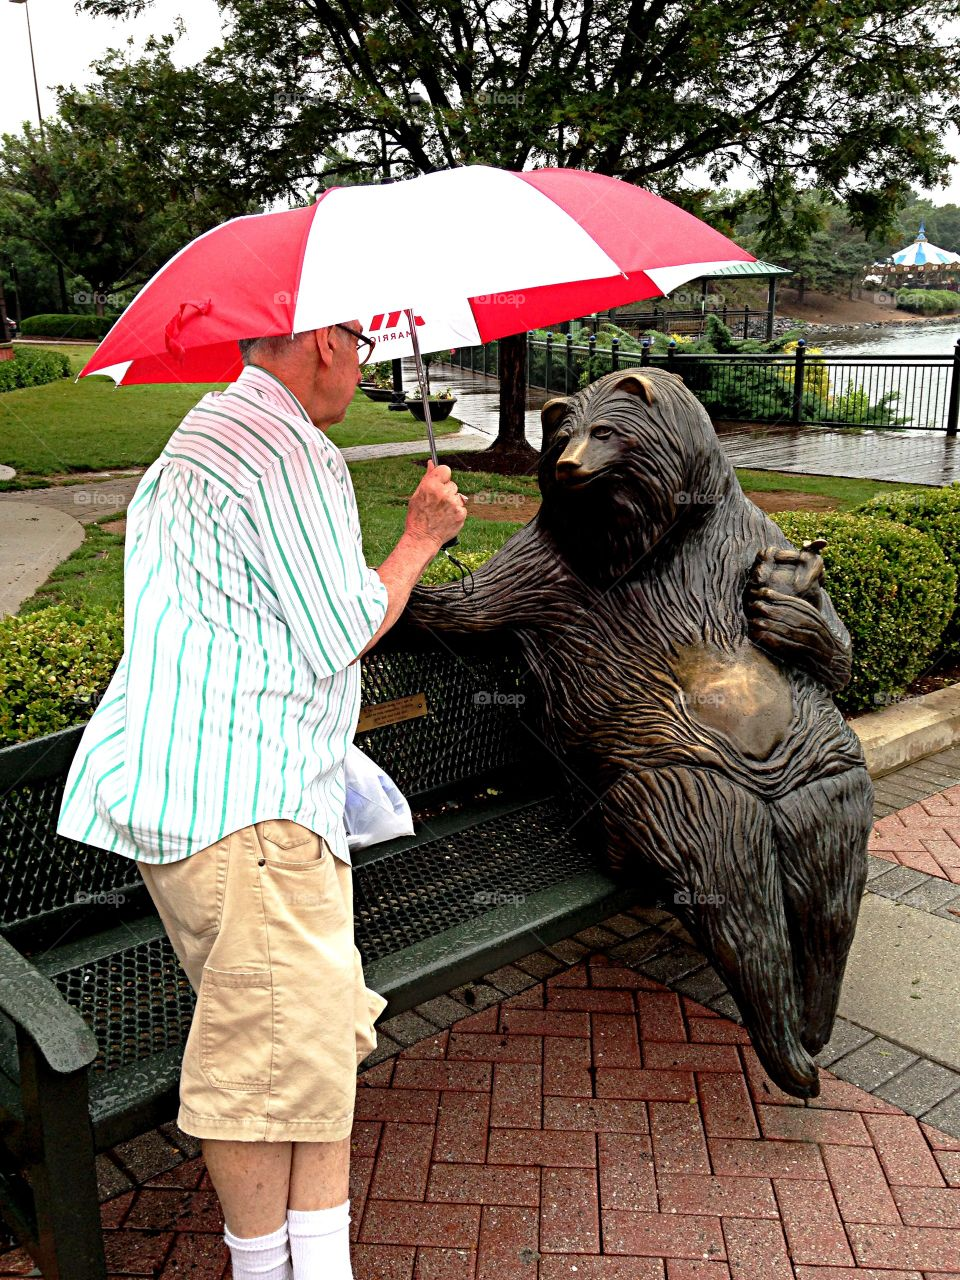 Man and Bear. Man talking to bear sculpture in park on a rainy day